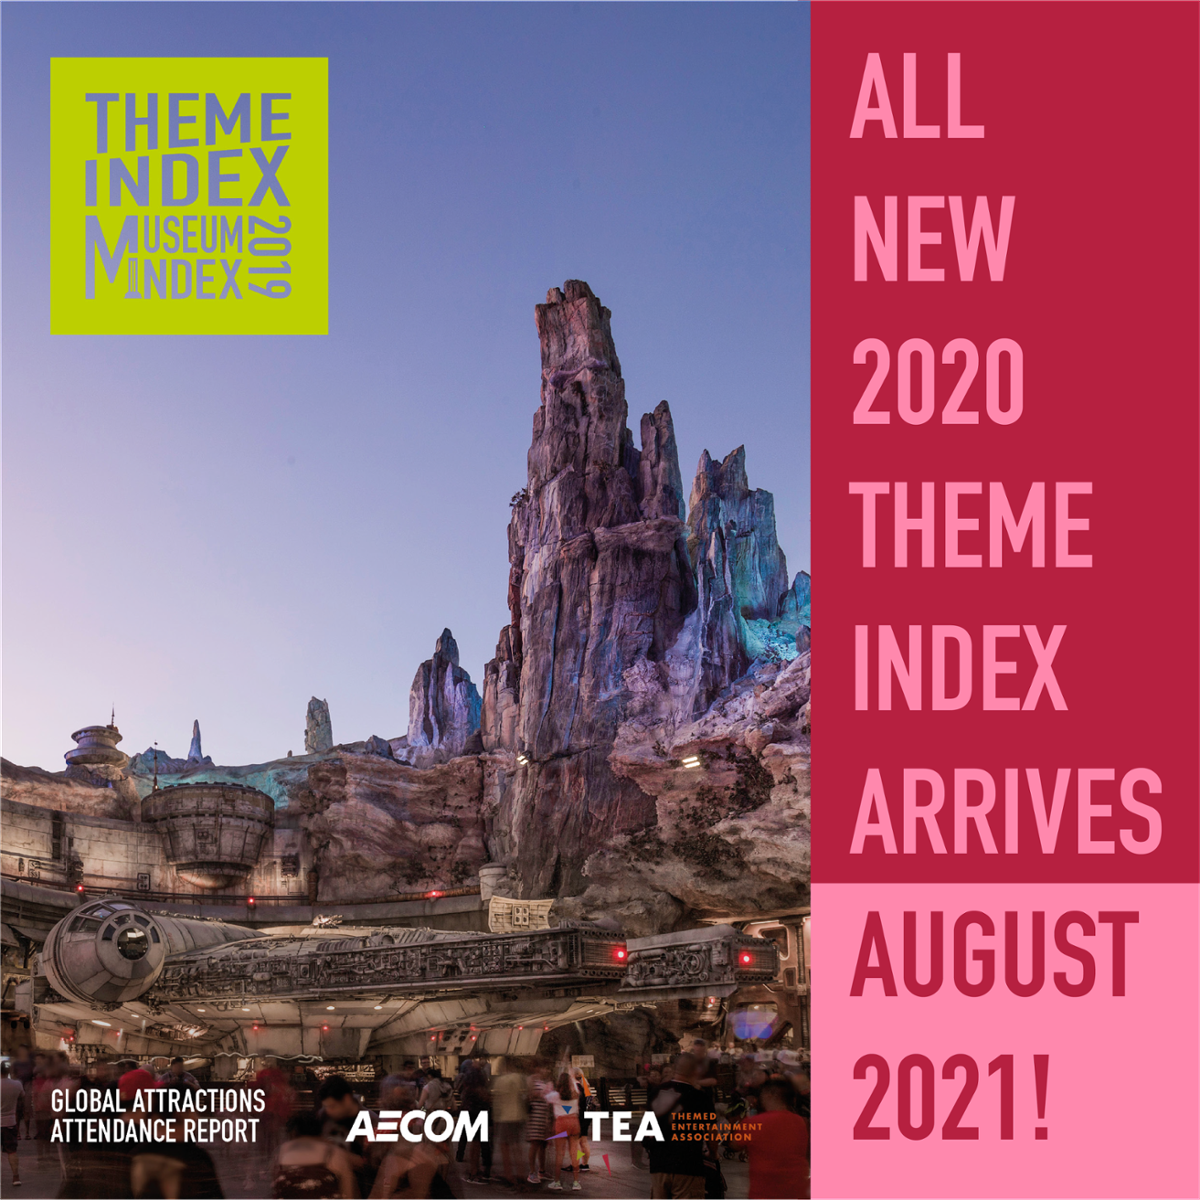 ALL NEW 2020 THEME INDEX - Arrives August 2021!